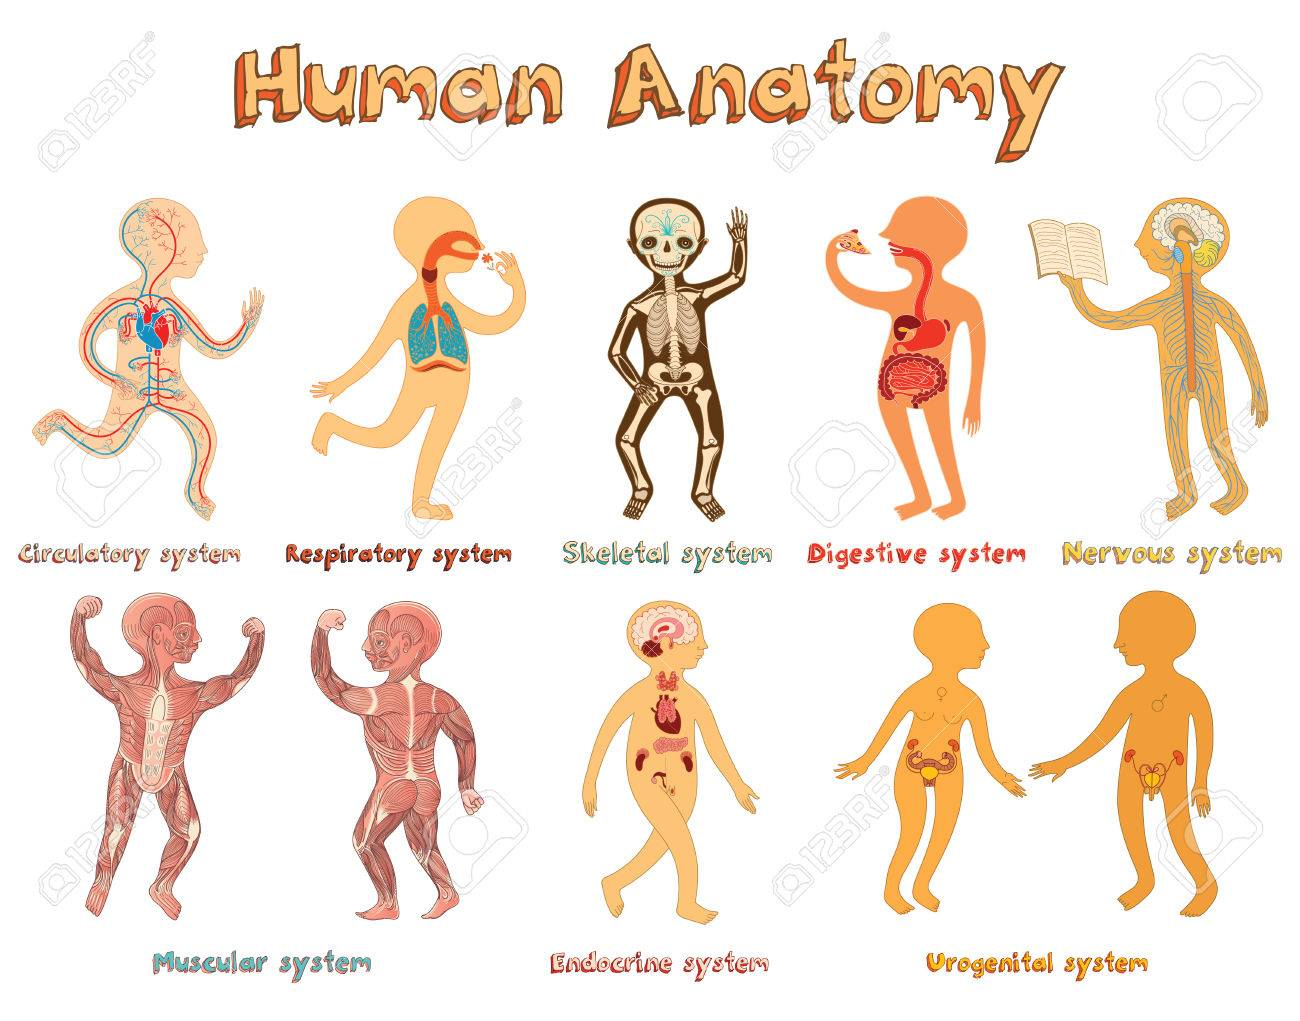 Educational Illustration Of Human Anatomy Systems Of Organs